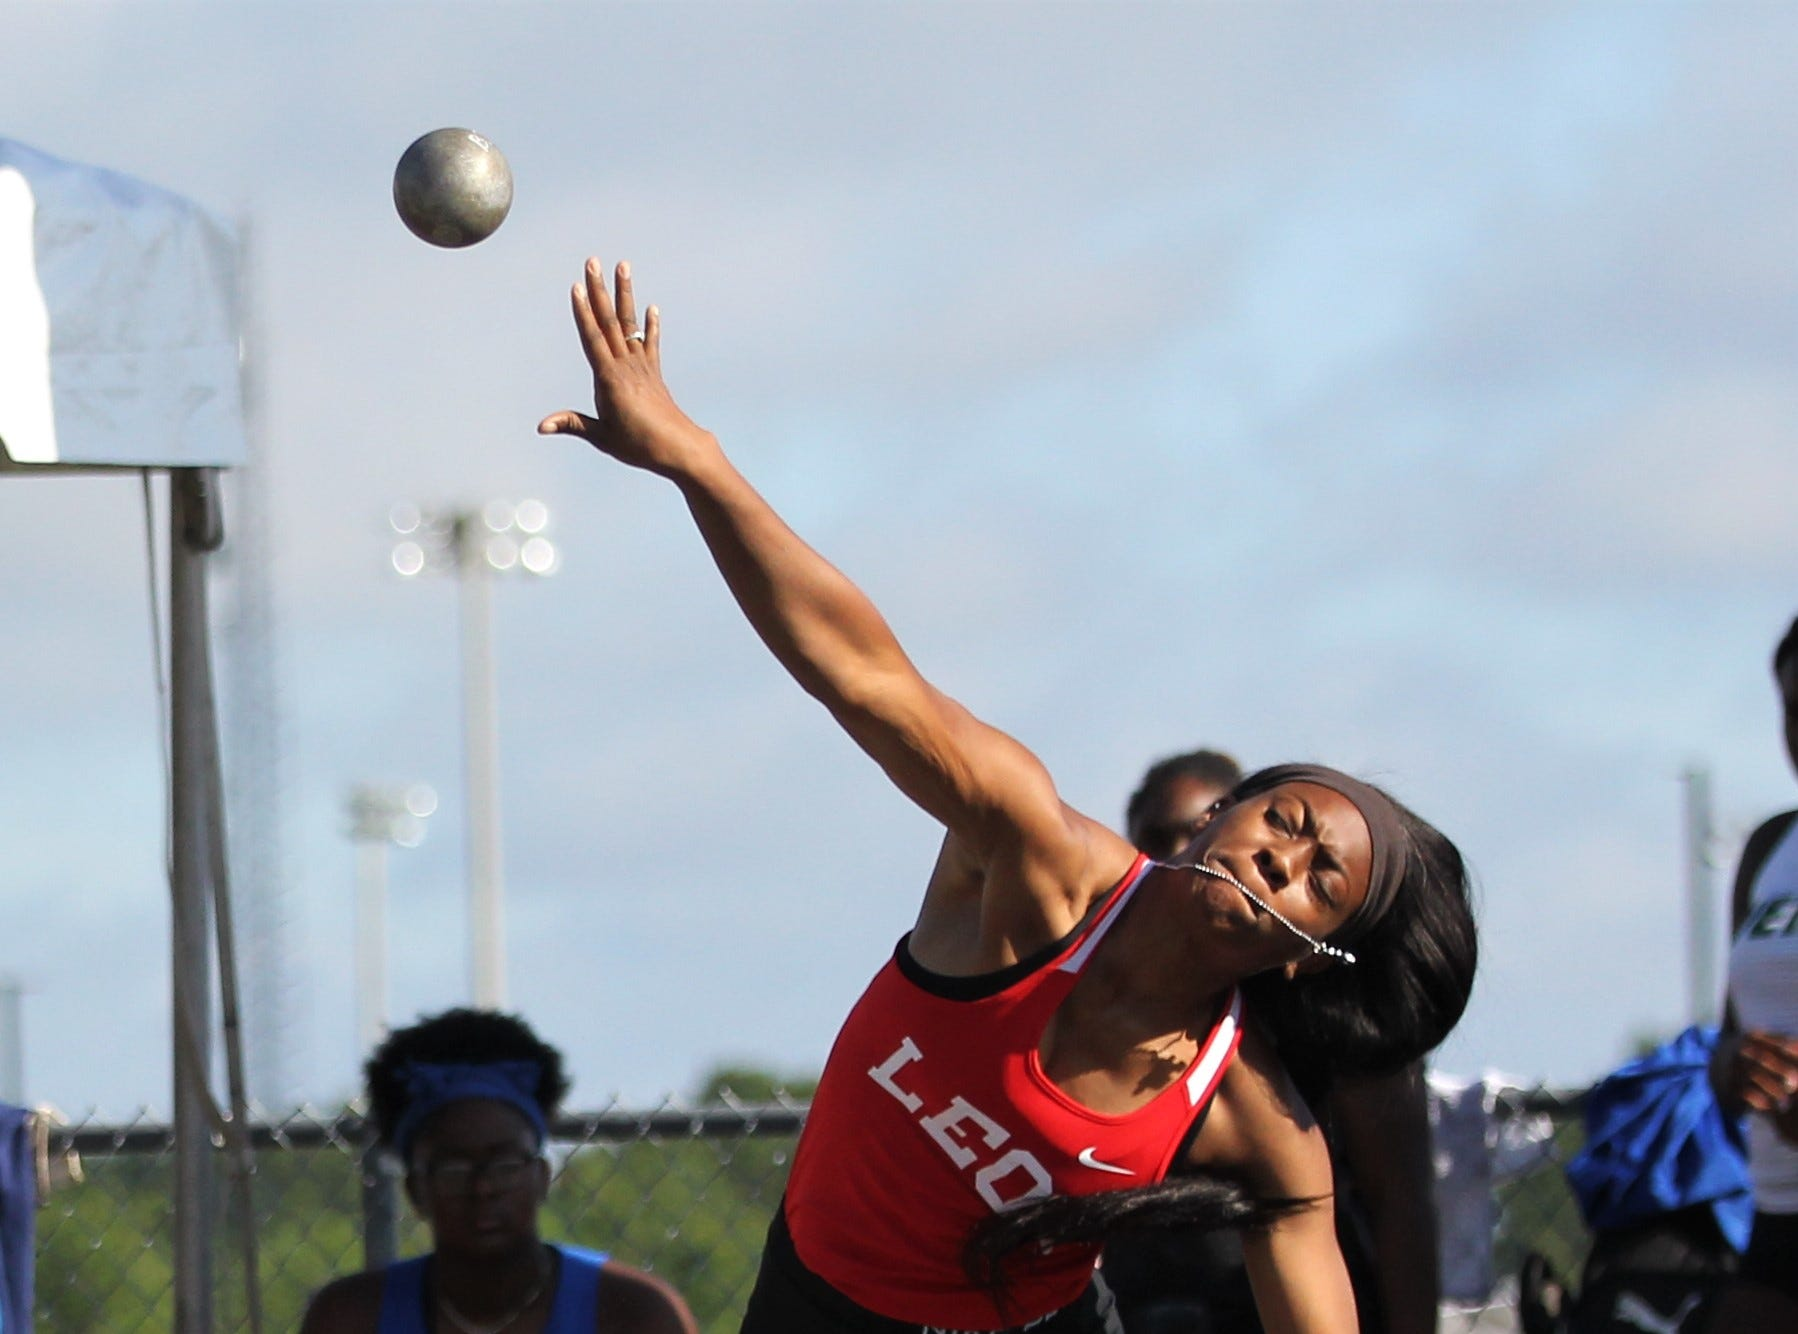 Leon senior A'Nylah Cobb throws shot put during the FHSAA Track and Field State Championships at UNF's Hodges Stadium in Jacksonville on May 4, 2019.